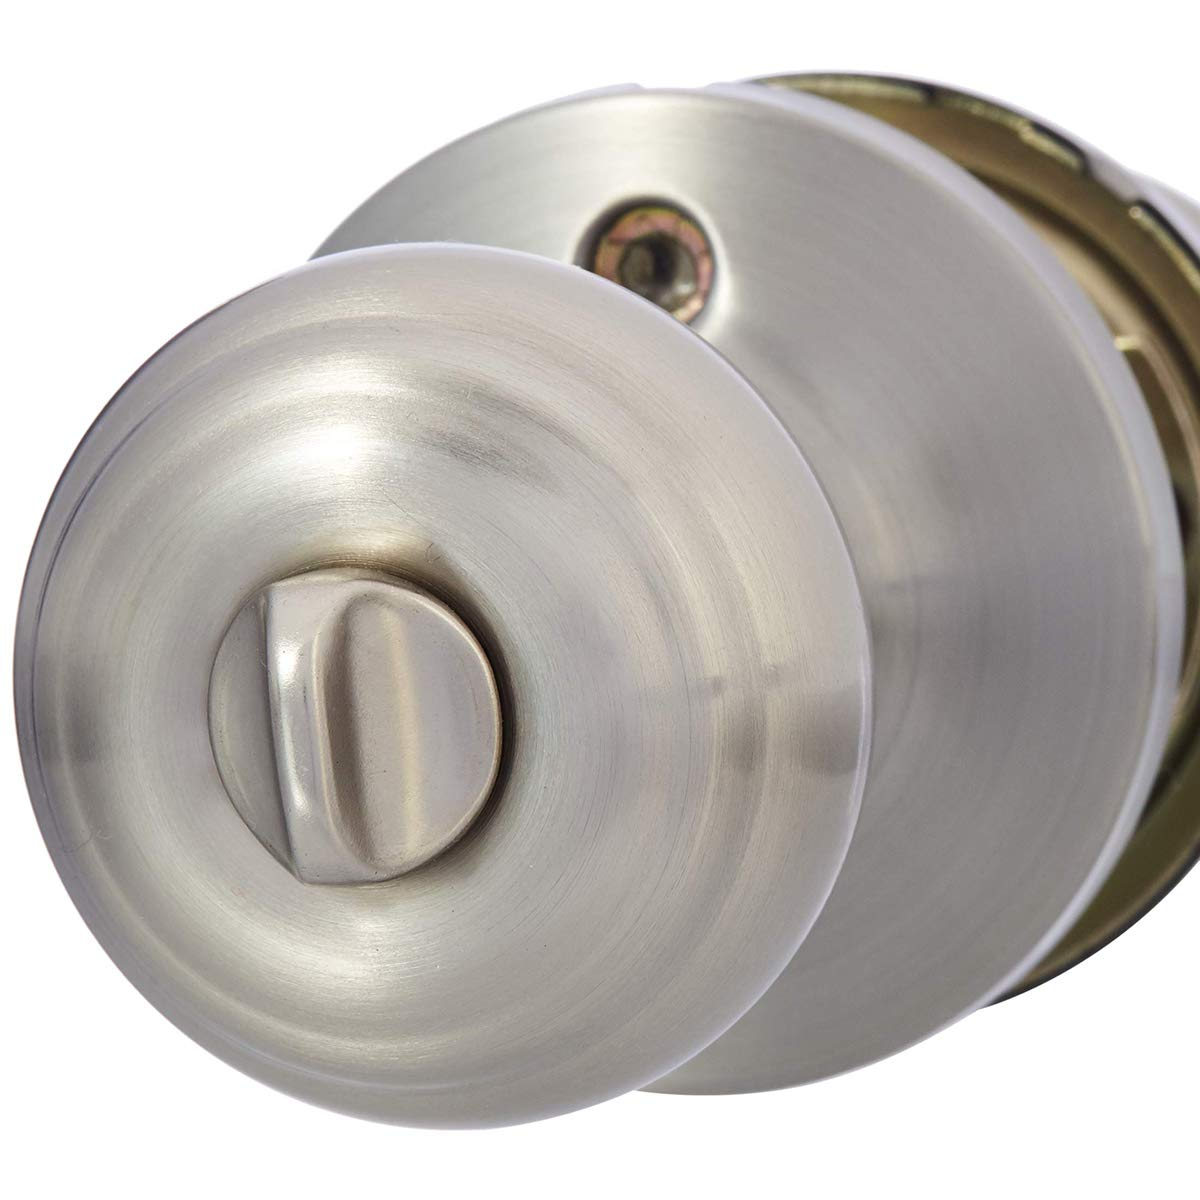 Basics Entry Knob and Deadbolt Polished Brass Classic 2-Pack